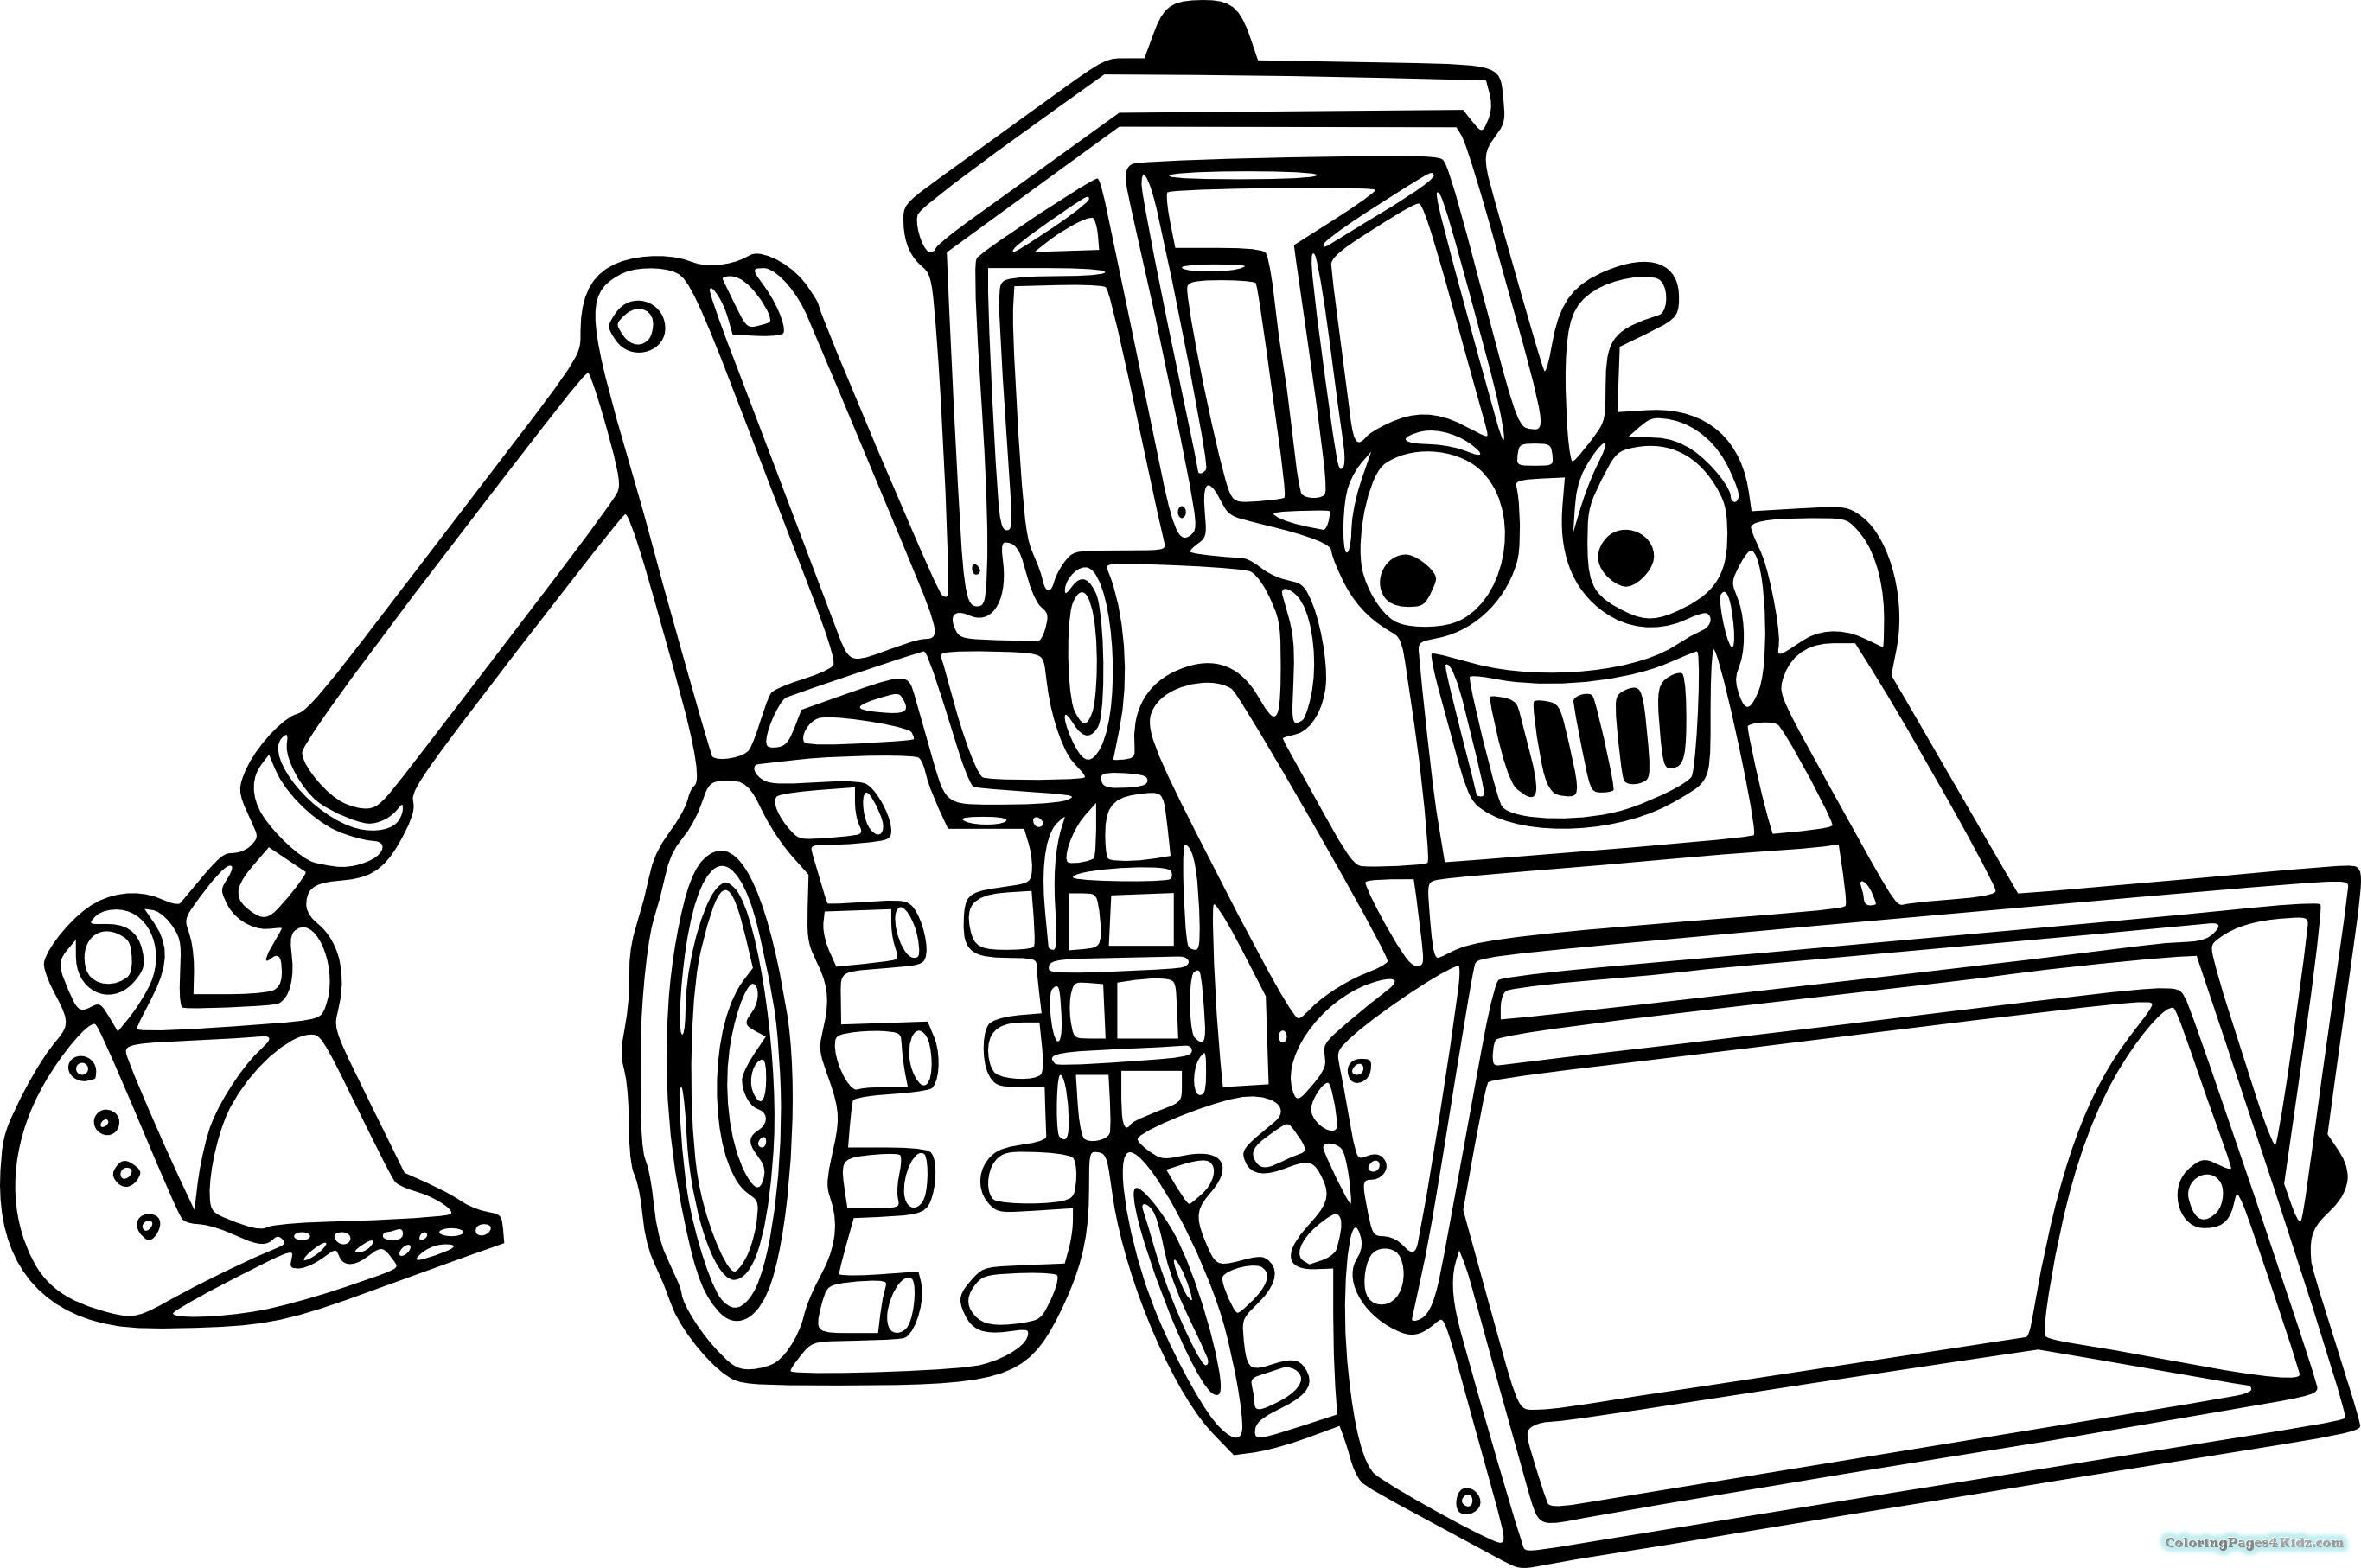 free printable tractor coloring pages kids tractor a coloring pages coloring pages for kids free tractor pages printable coloring